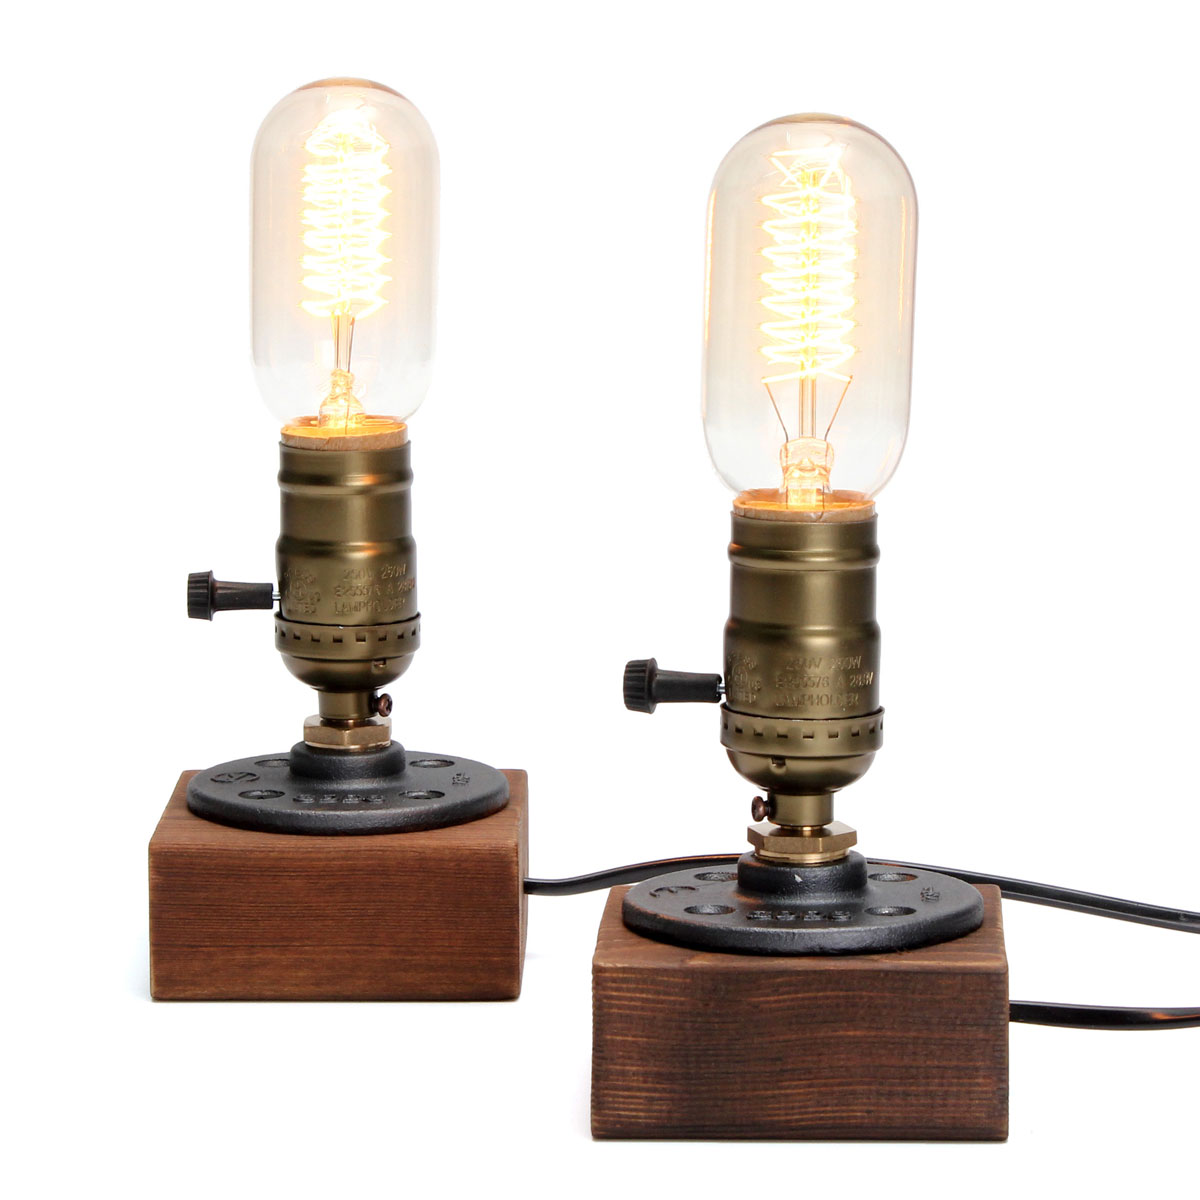 Table lamp socket - Vintage Desk Light Table Lamp Edison Bulb E27 40w Industrial Retro Wooden Socket Lighting Fixture Dimmable